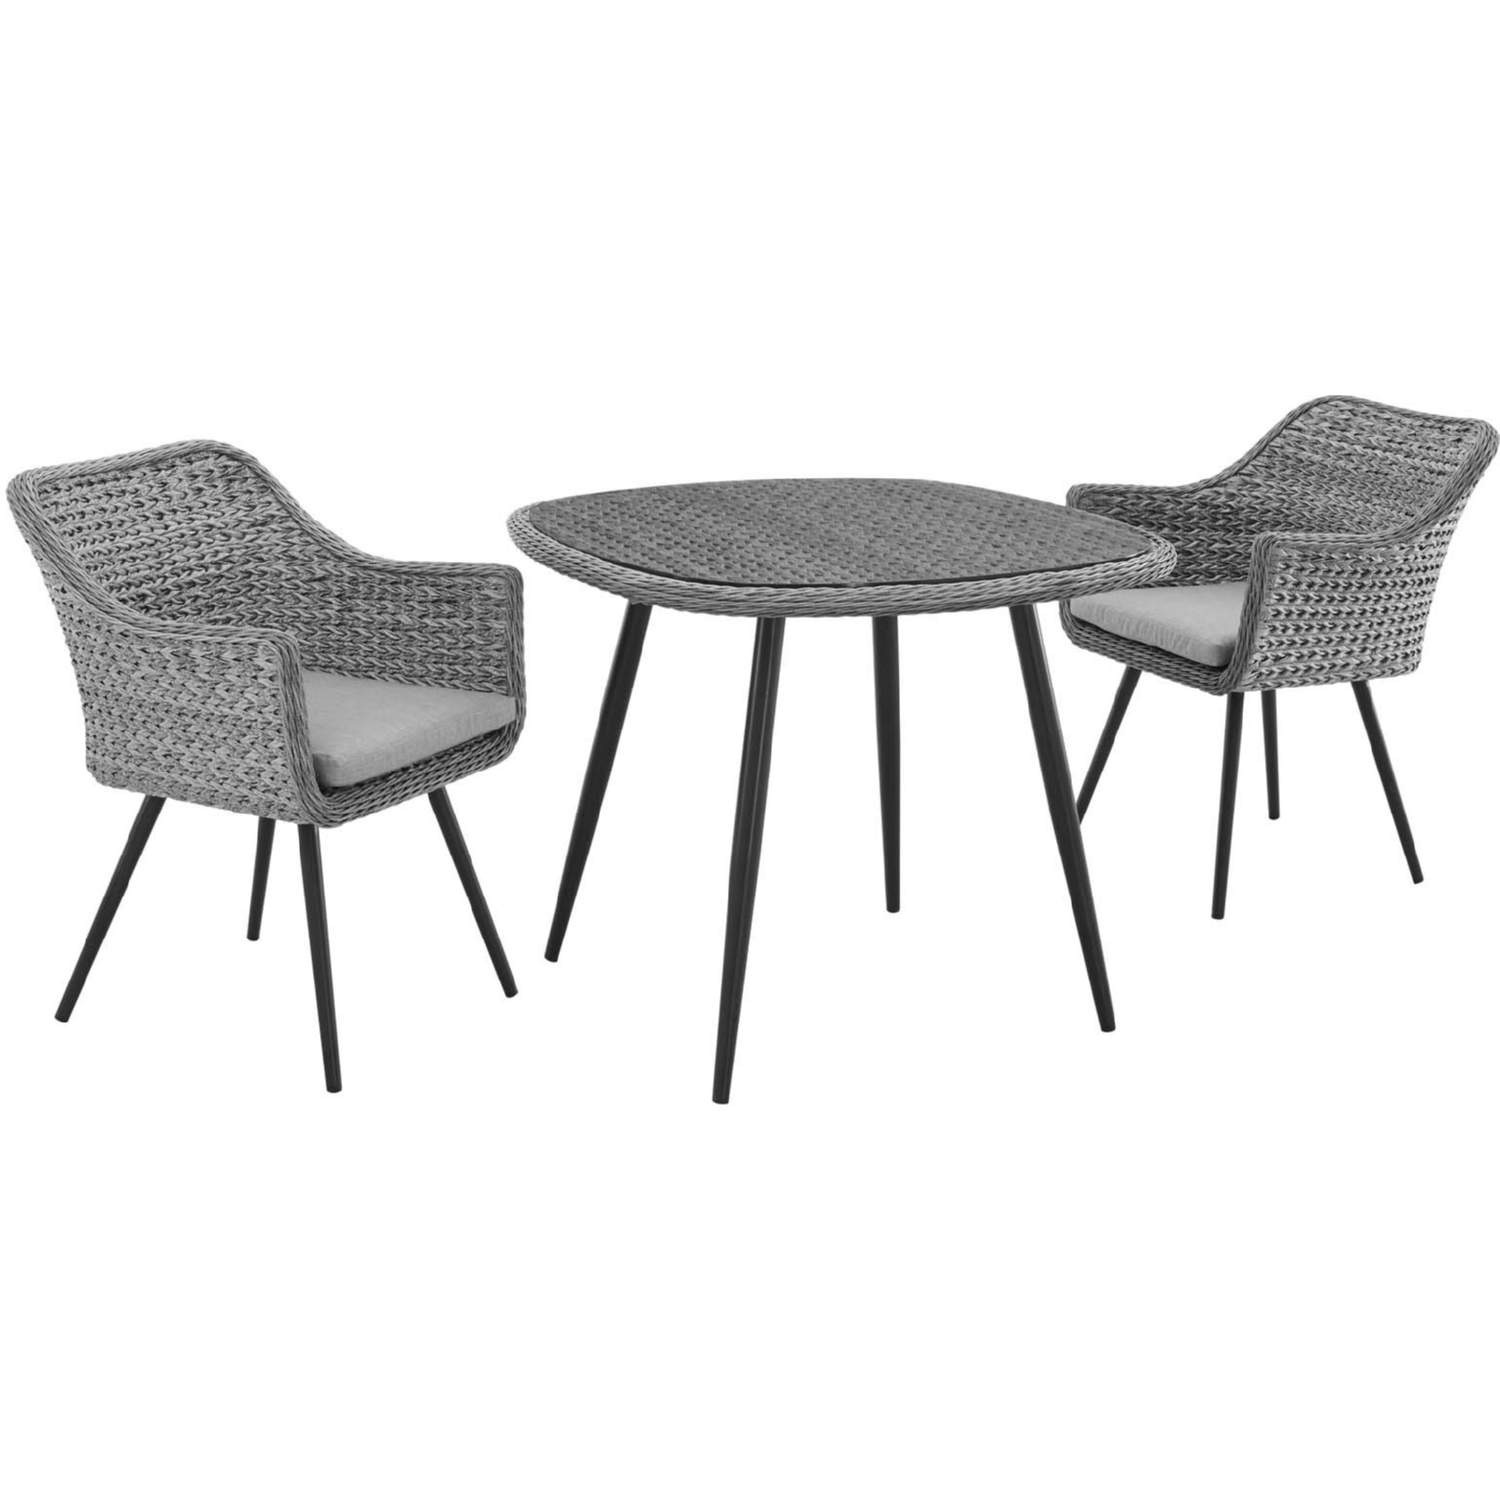 Modern 3-Piece Dining Set In Gray Rattan Weave - image-0